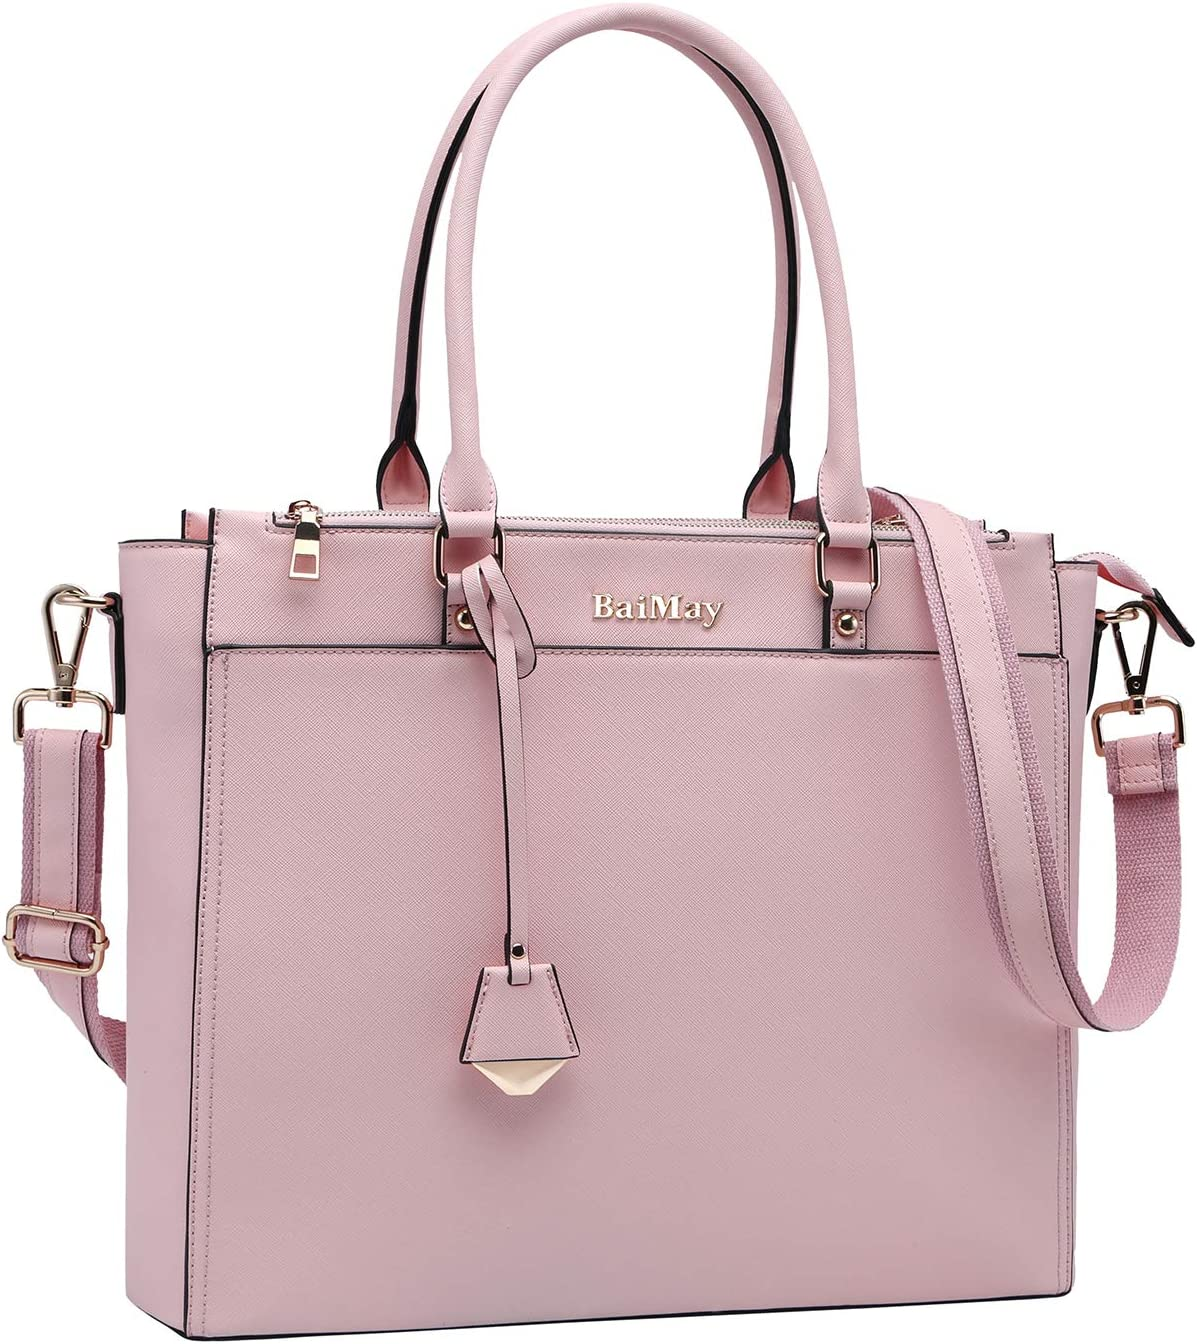 Laptop Bag for Women,15.6-17 Inch Laptop Tote Ladies Briefcase Roomy Work Bag Computer Bag-Pink 17in